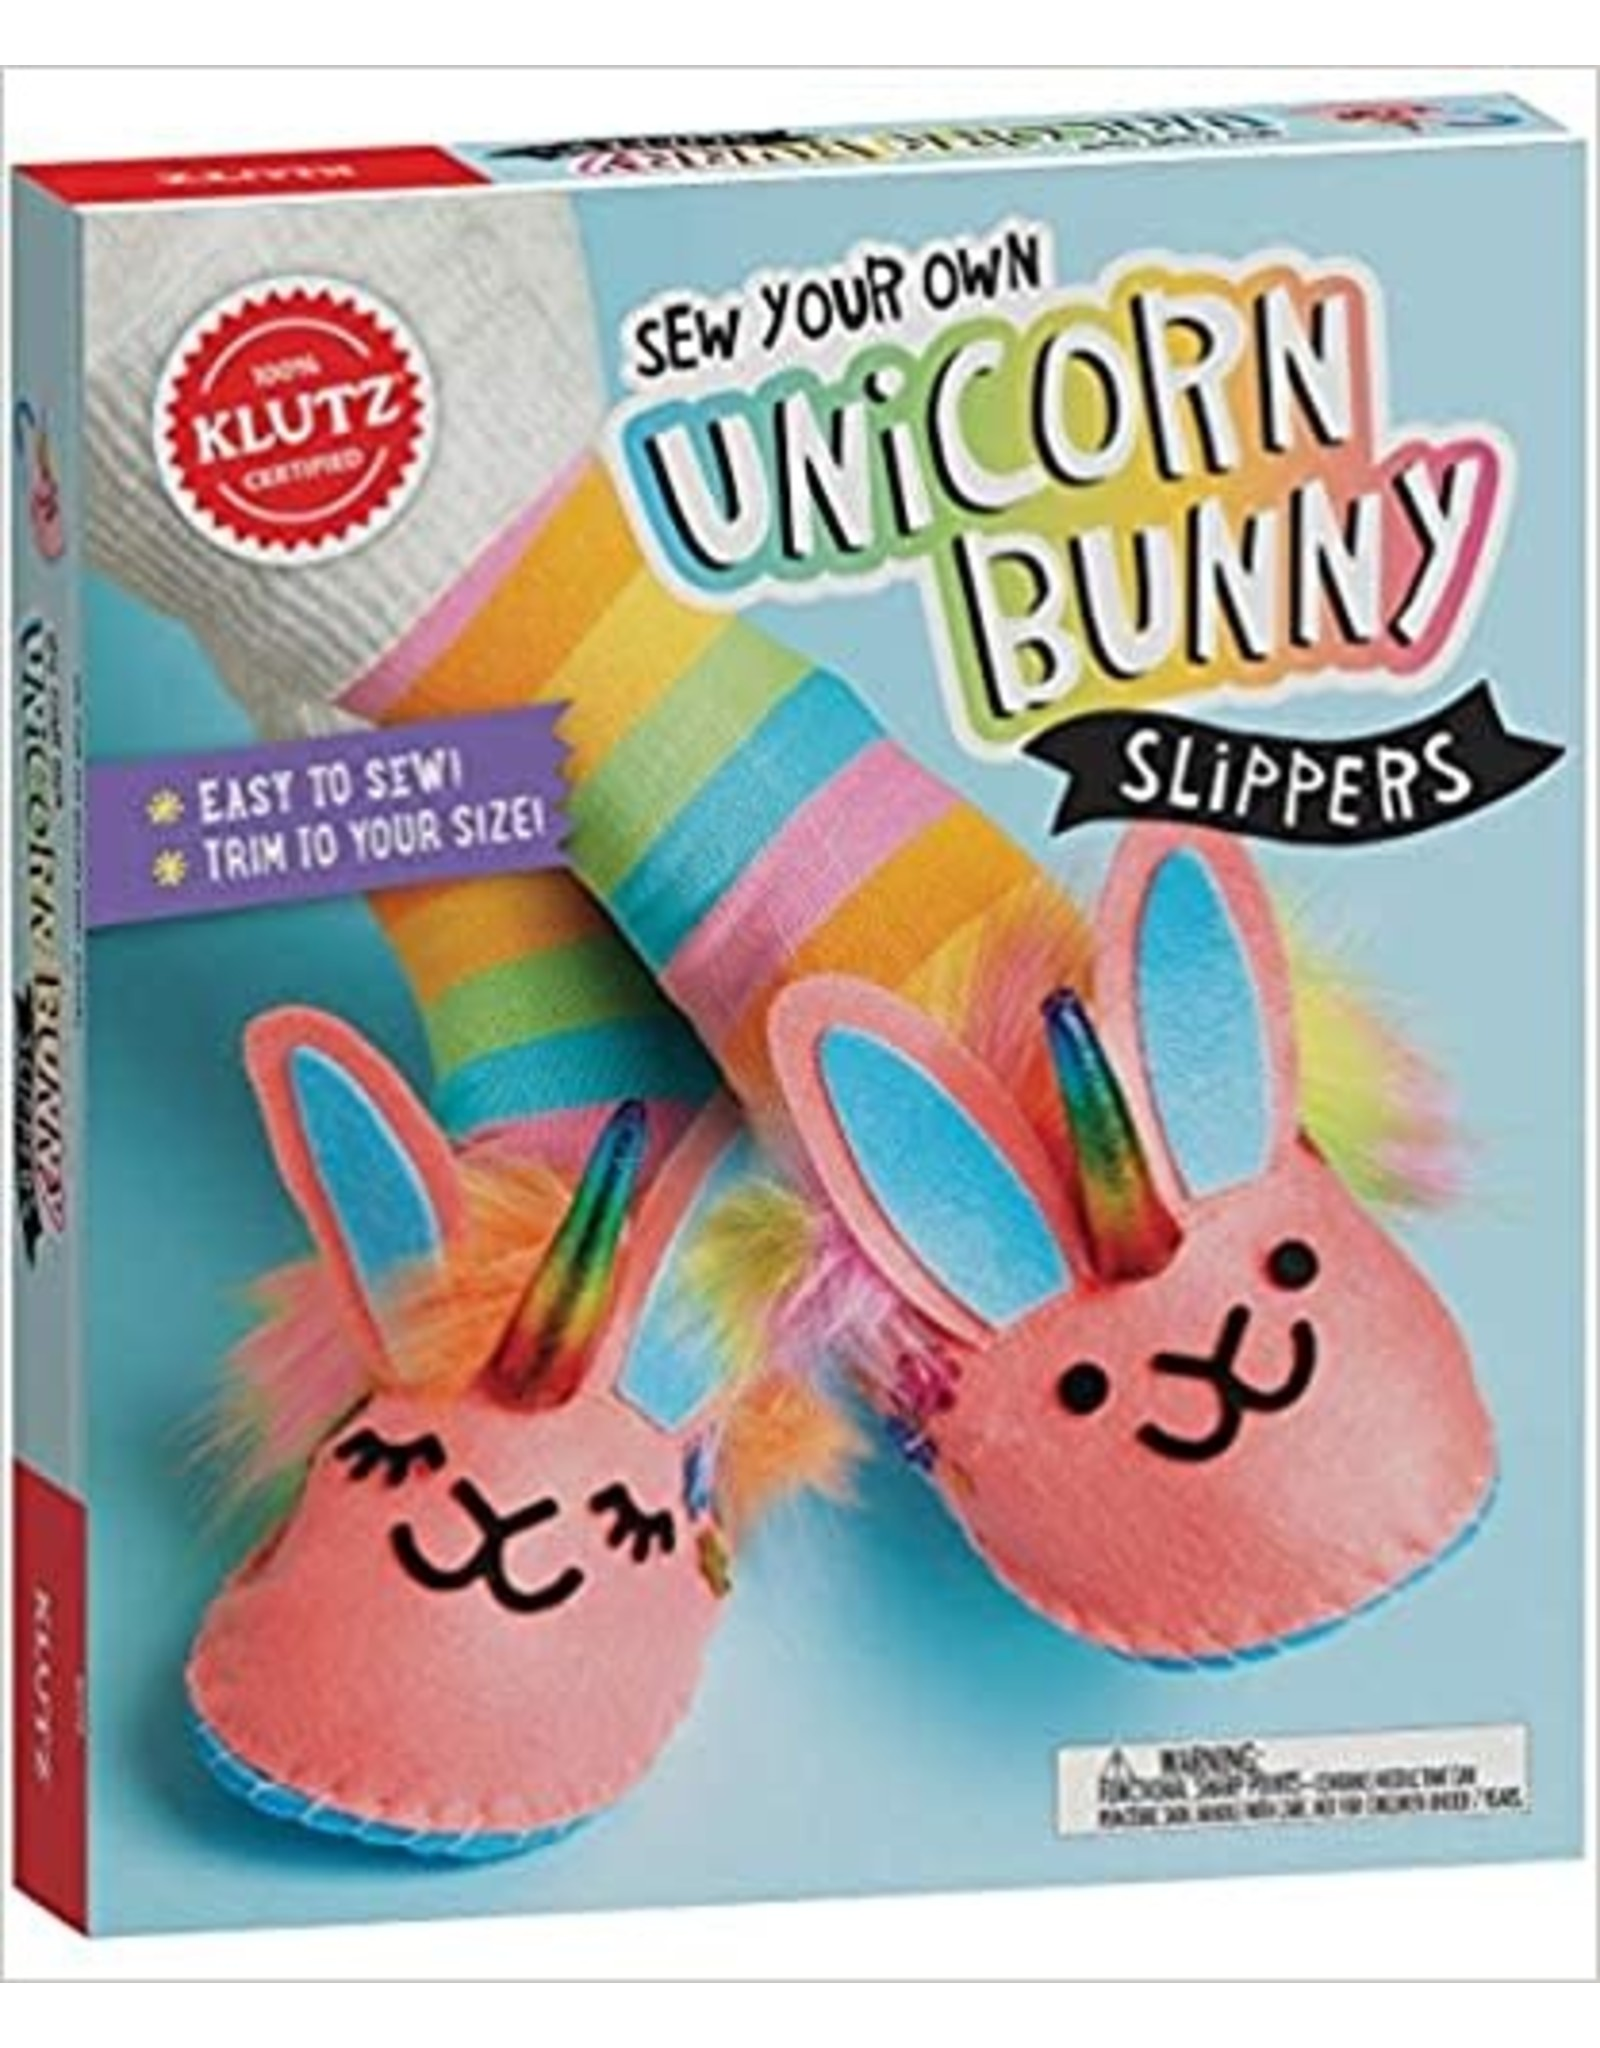 Klutz Klutz: Sew Your Own Unicorn Bunny Slippers